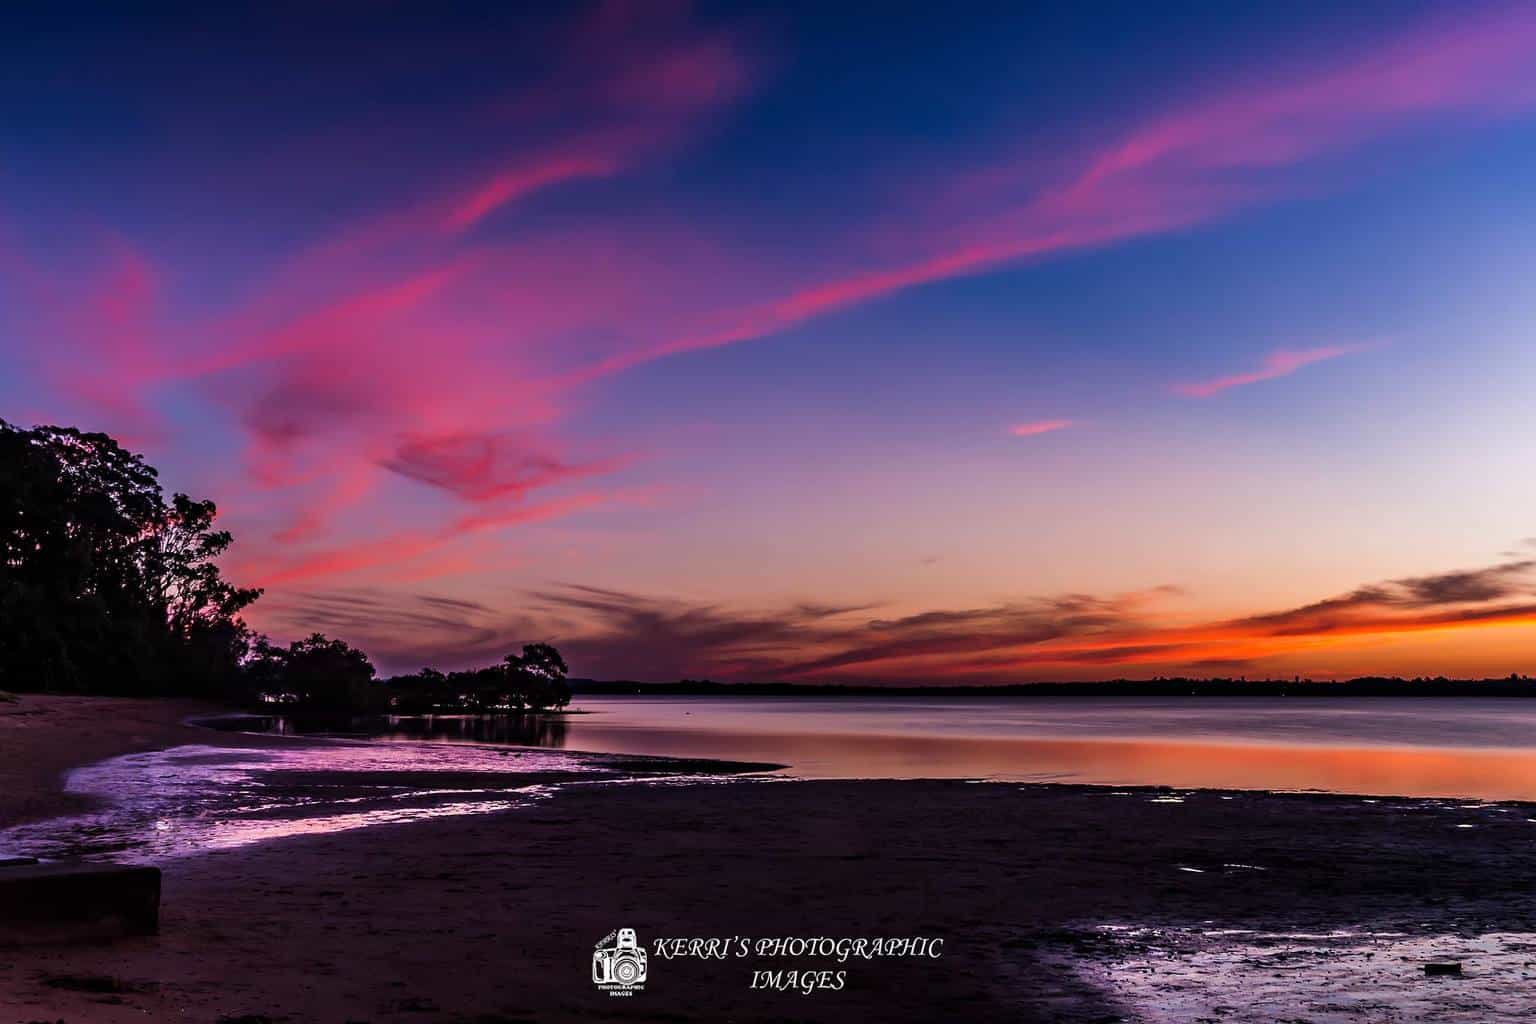 Amazing sunsets in Australia at the moment - great colours, reflections, clouds - Aussie Aussie Aussie